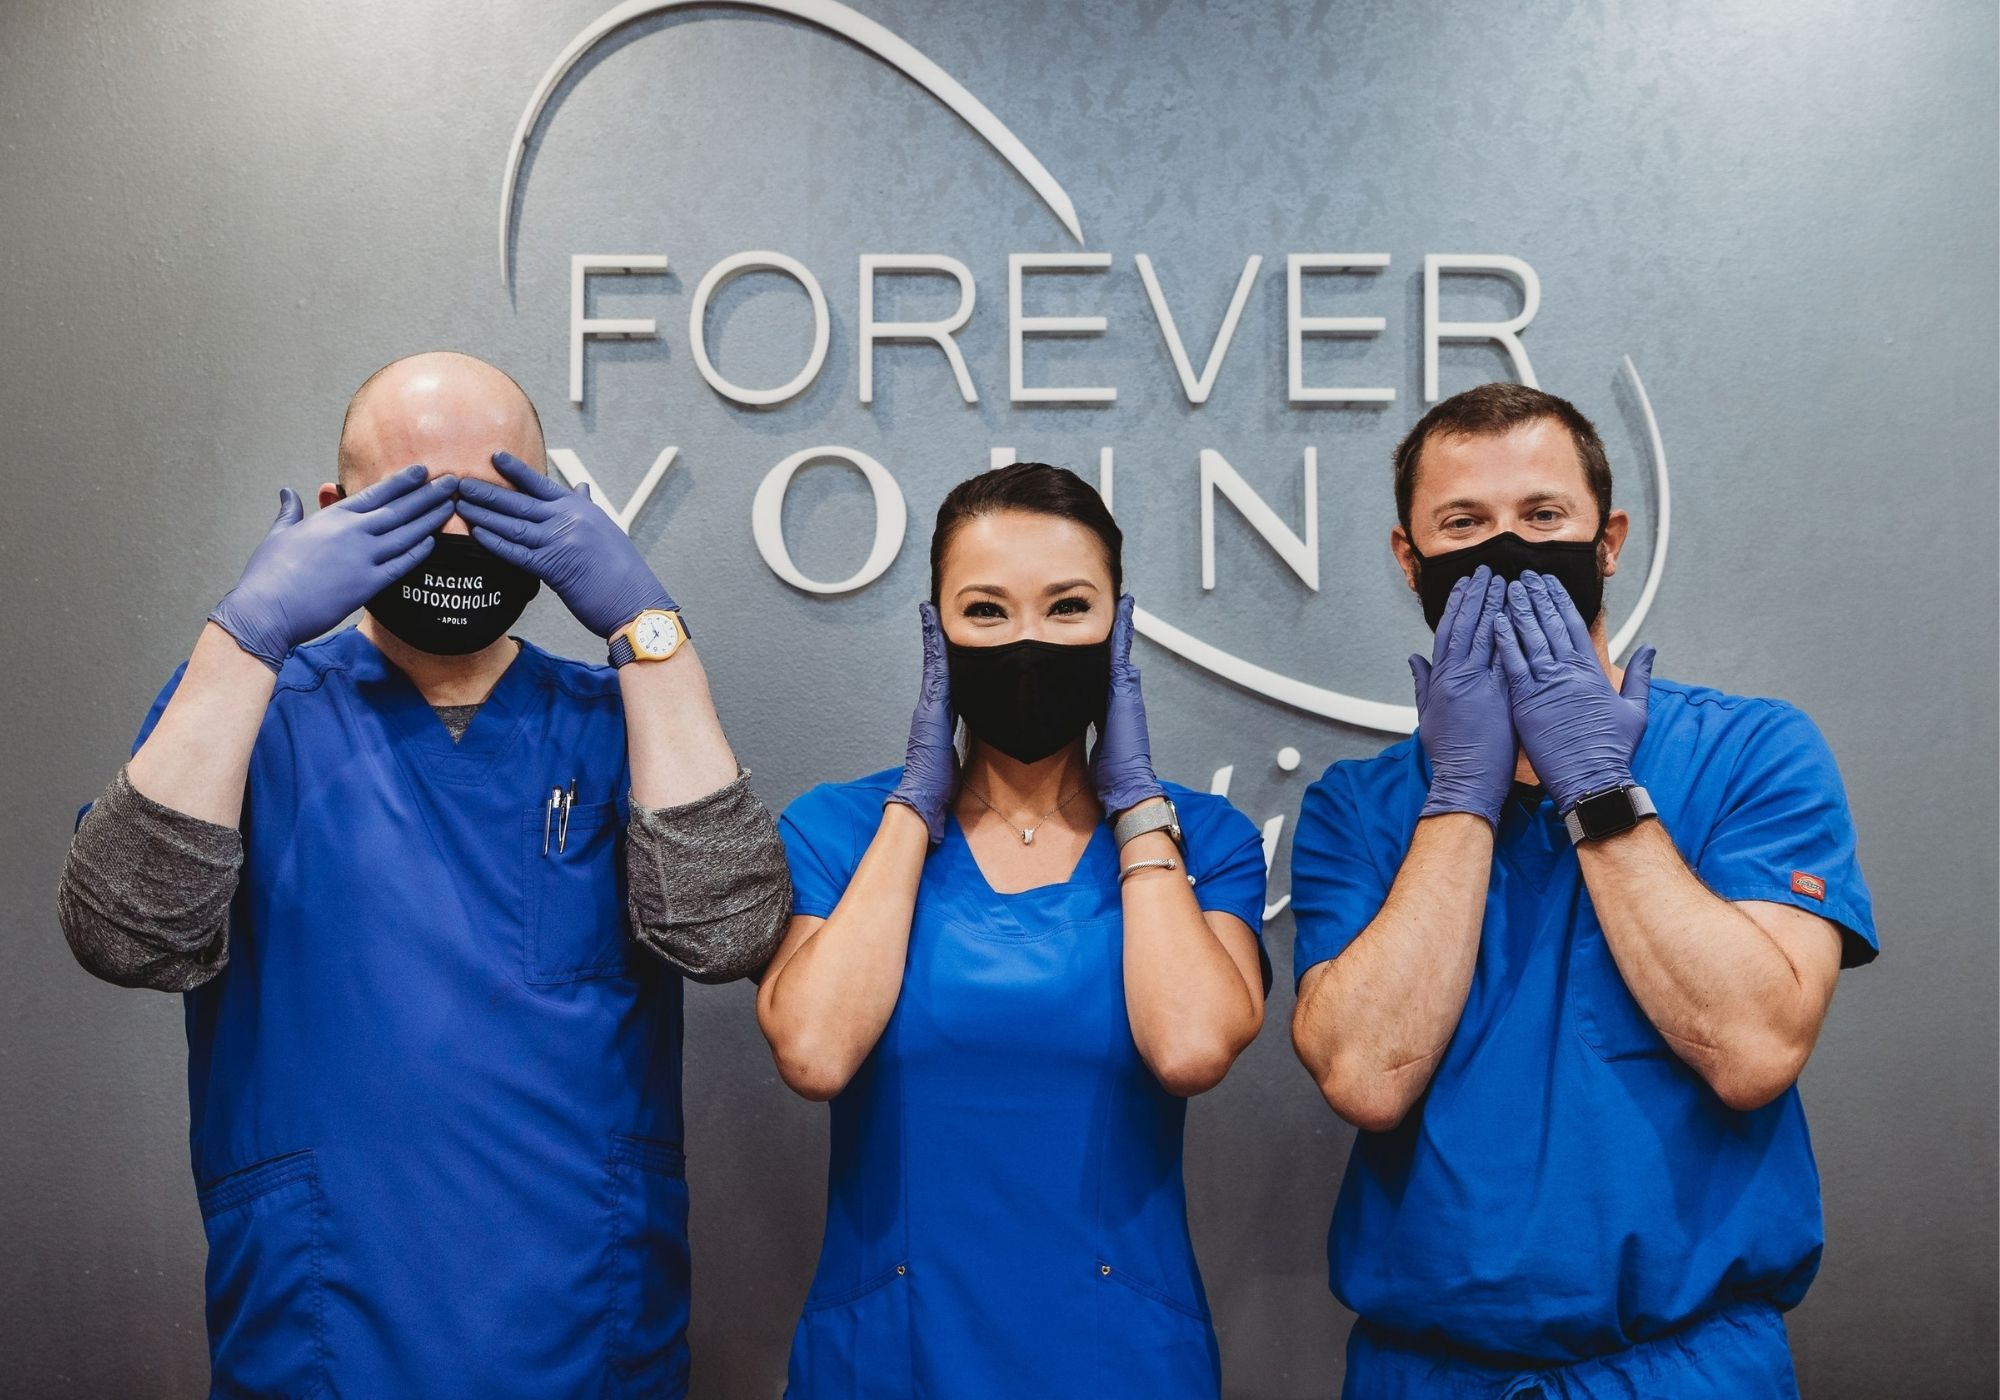 Forever Young Aesthetics microneedling team in Tampa FL